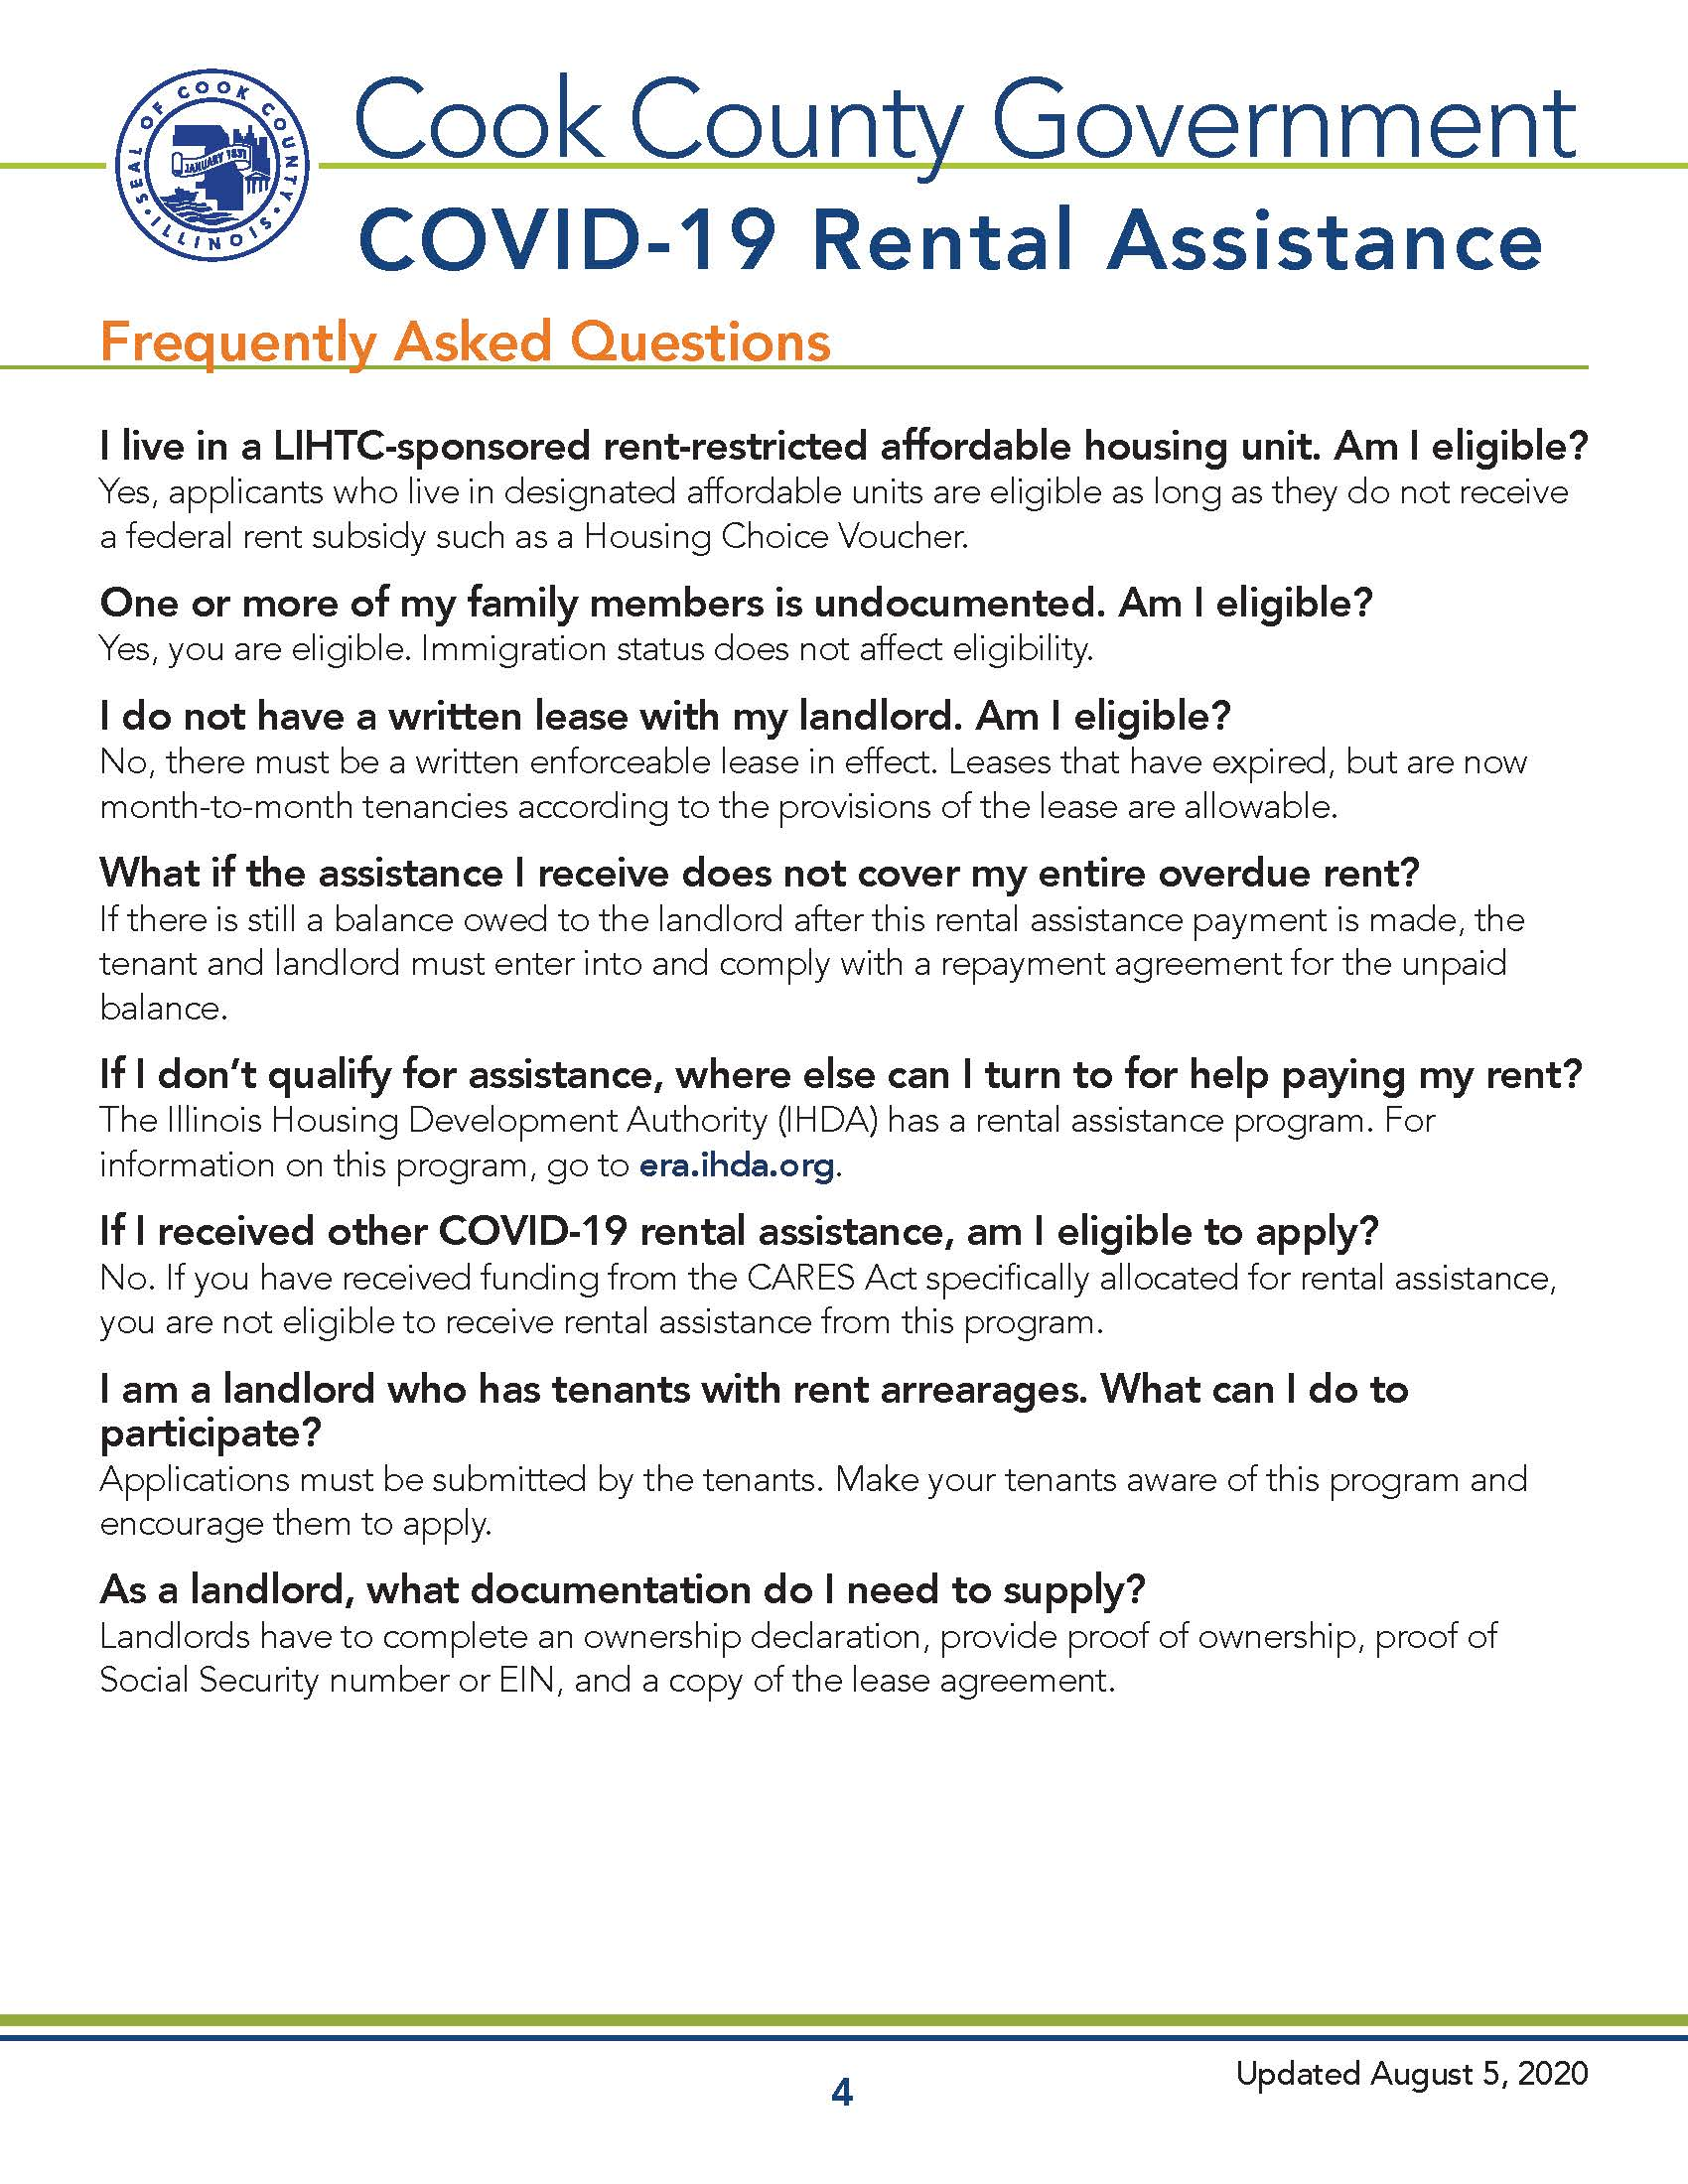 Cook County COVID-19 Recovery - Rental Assistance Overview Page 4